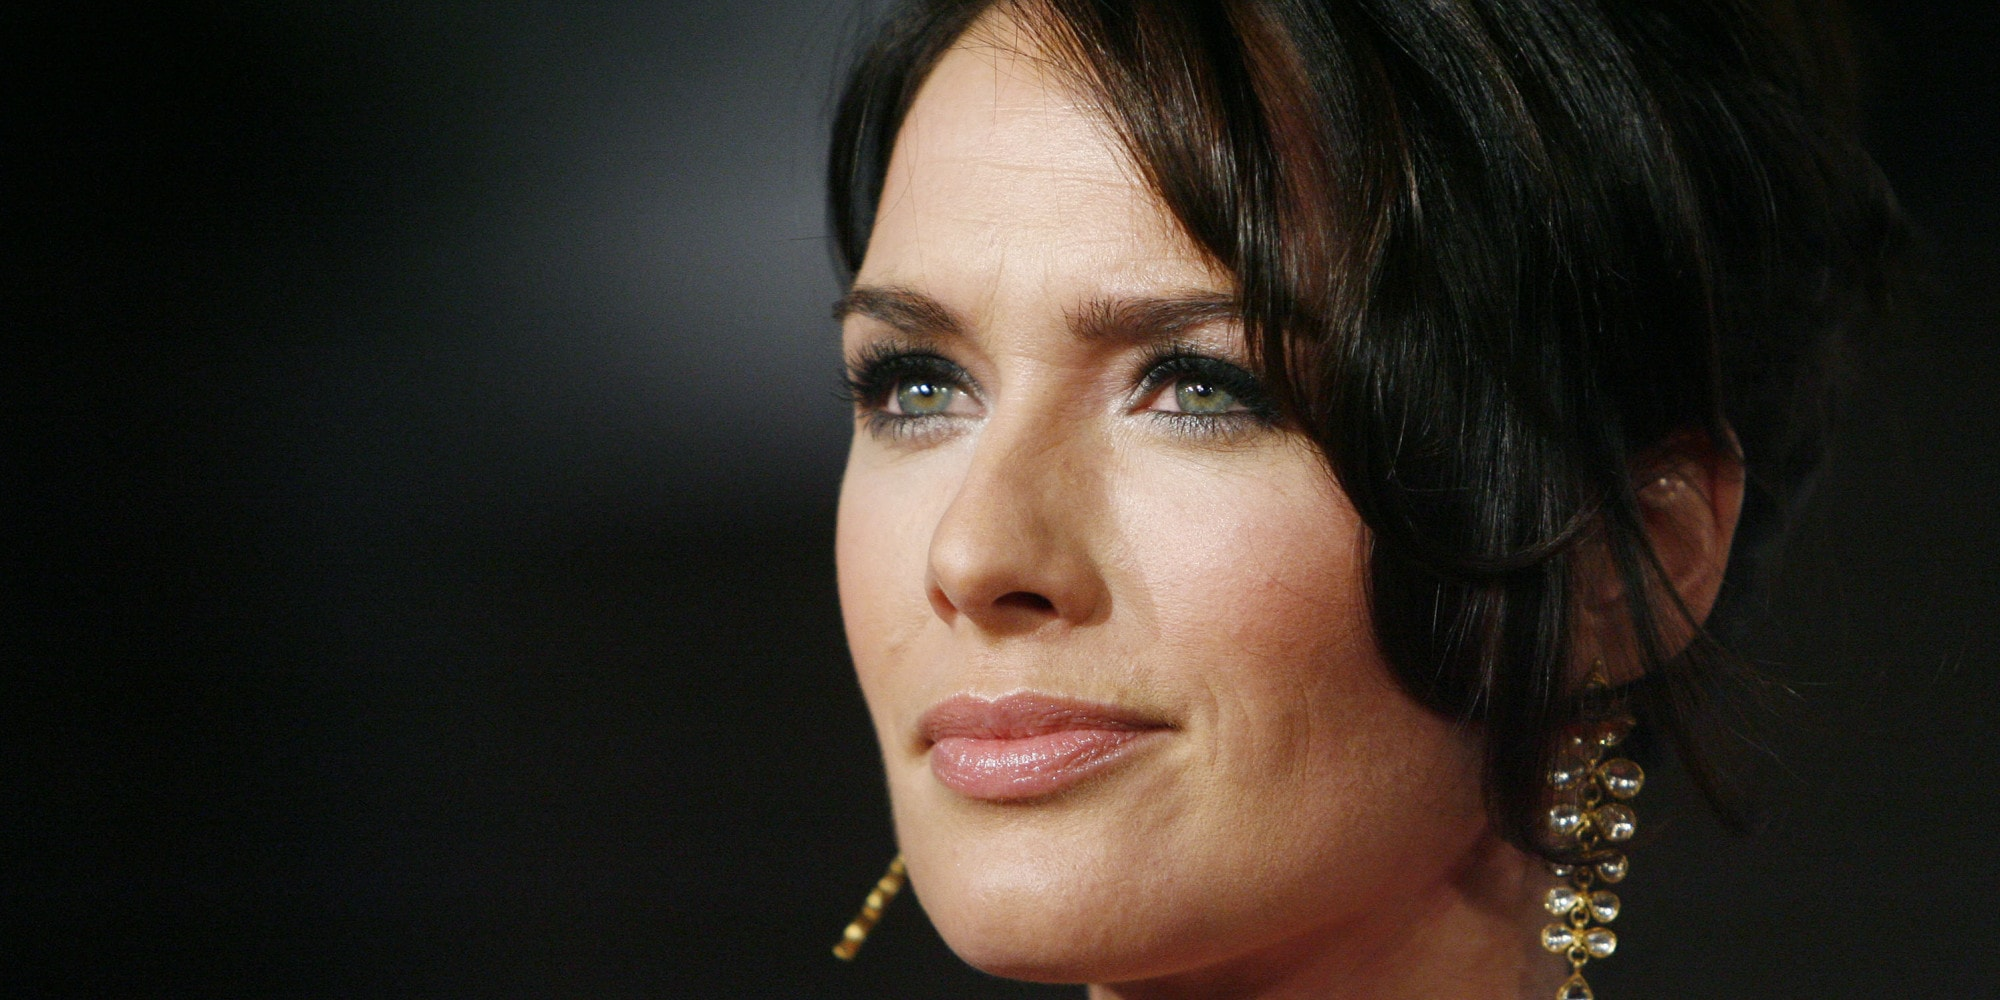 Lena Headey HQ wallpapers